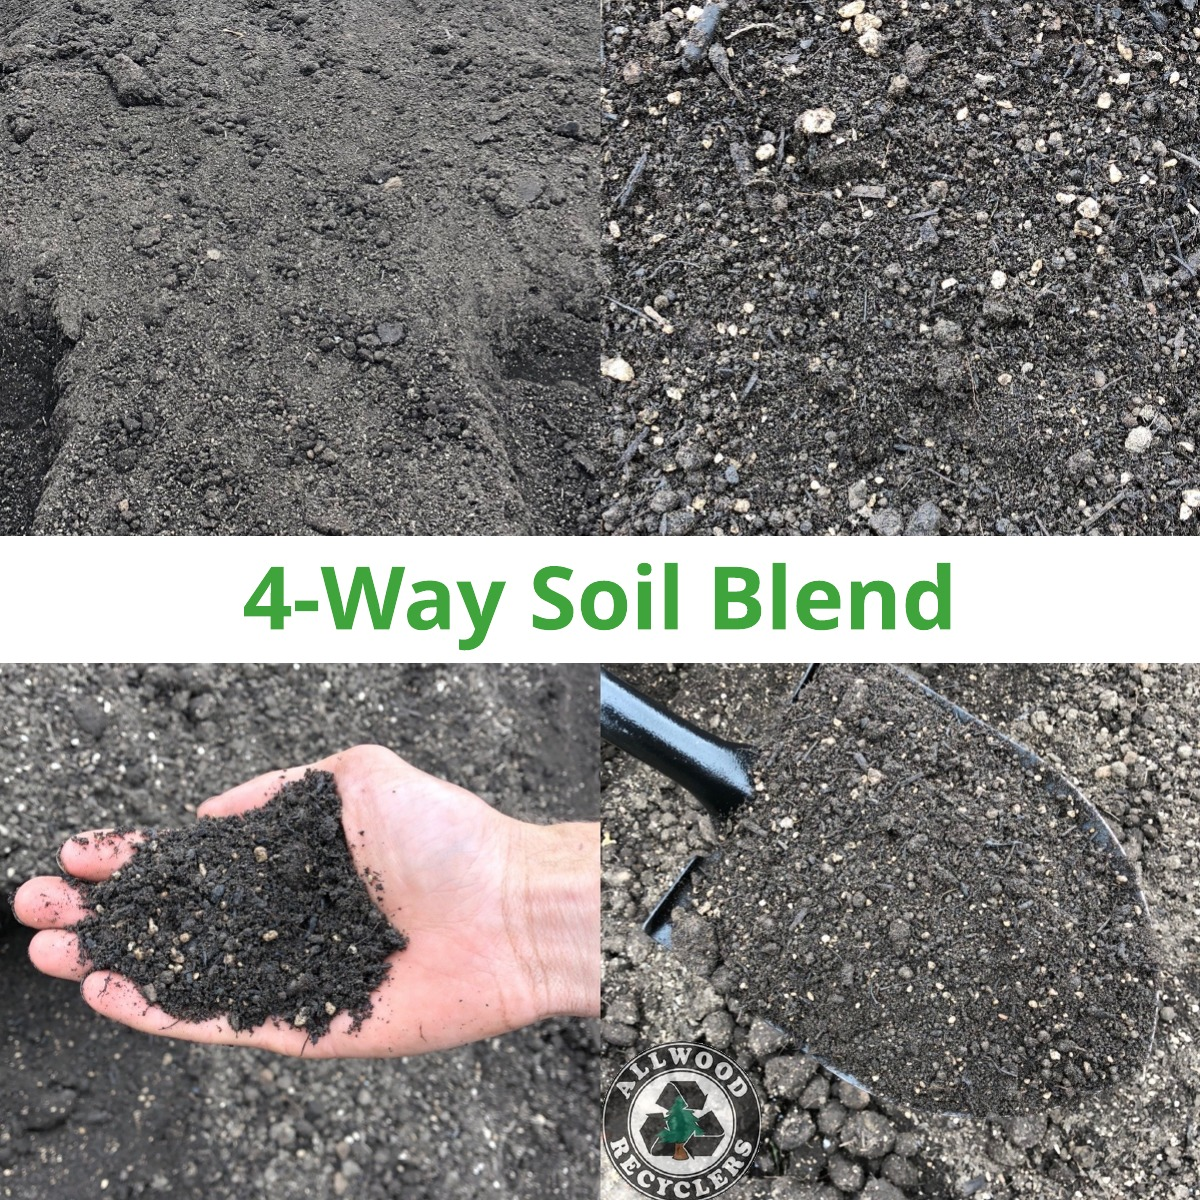 4-Way Soil Blend